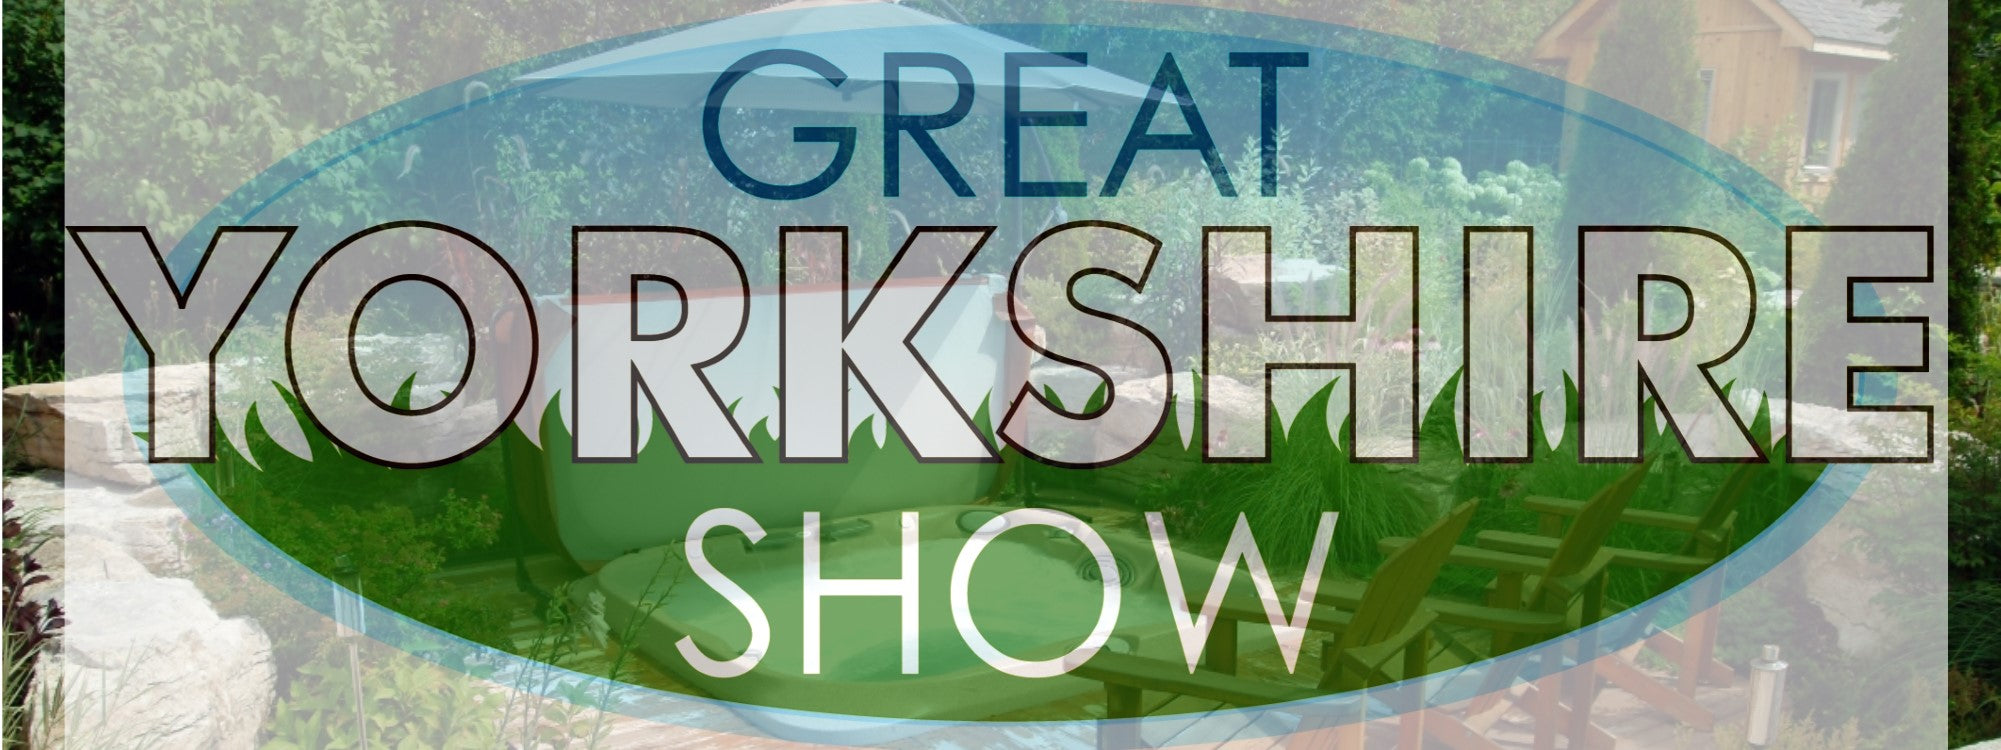 Outdoor Living at the Great Yorkshire Show